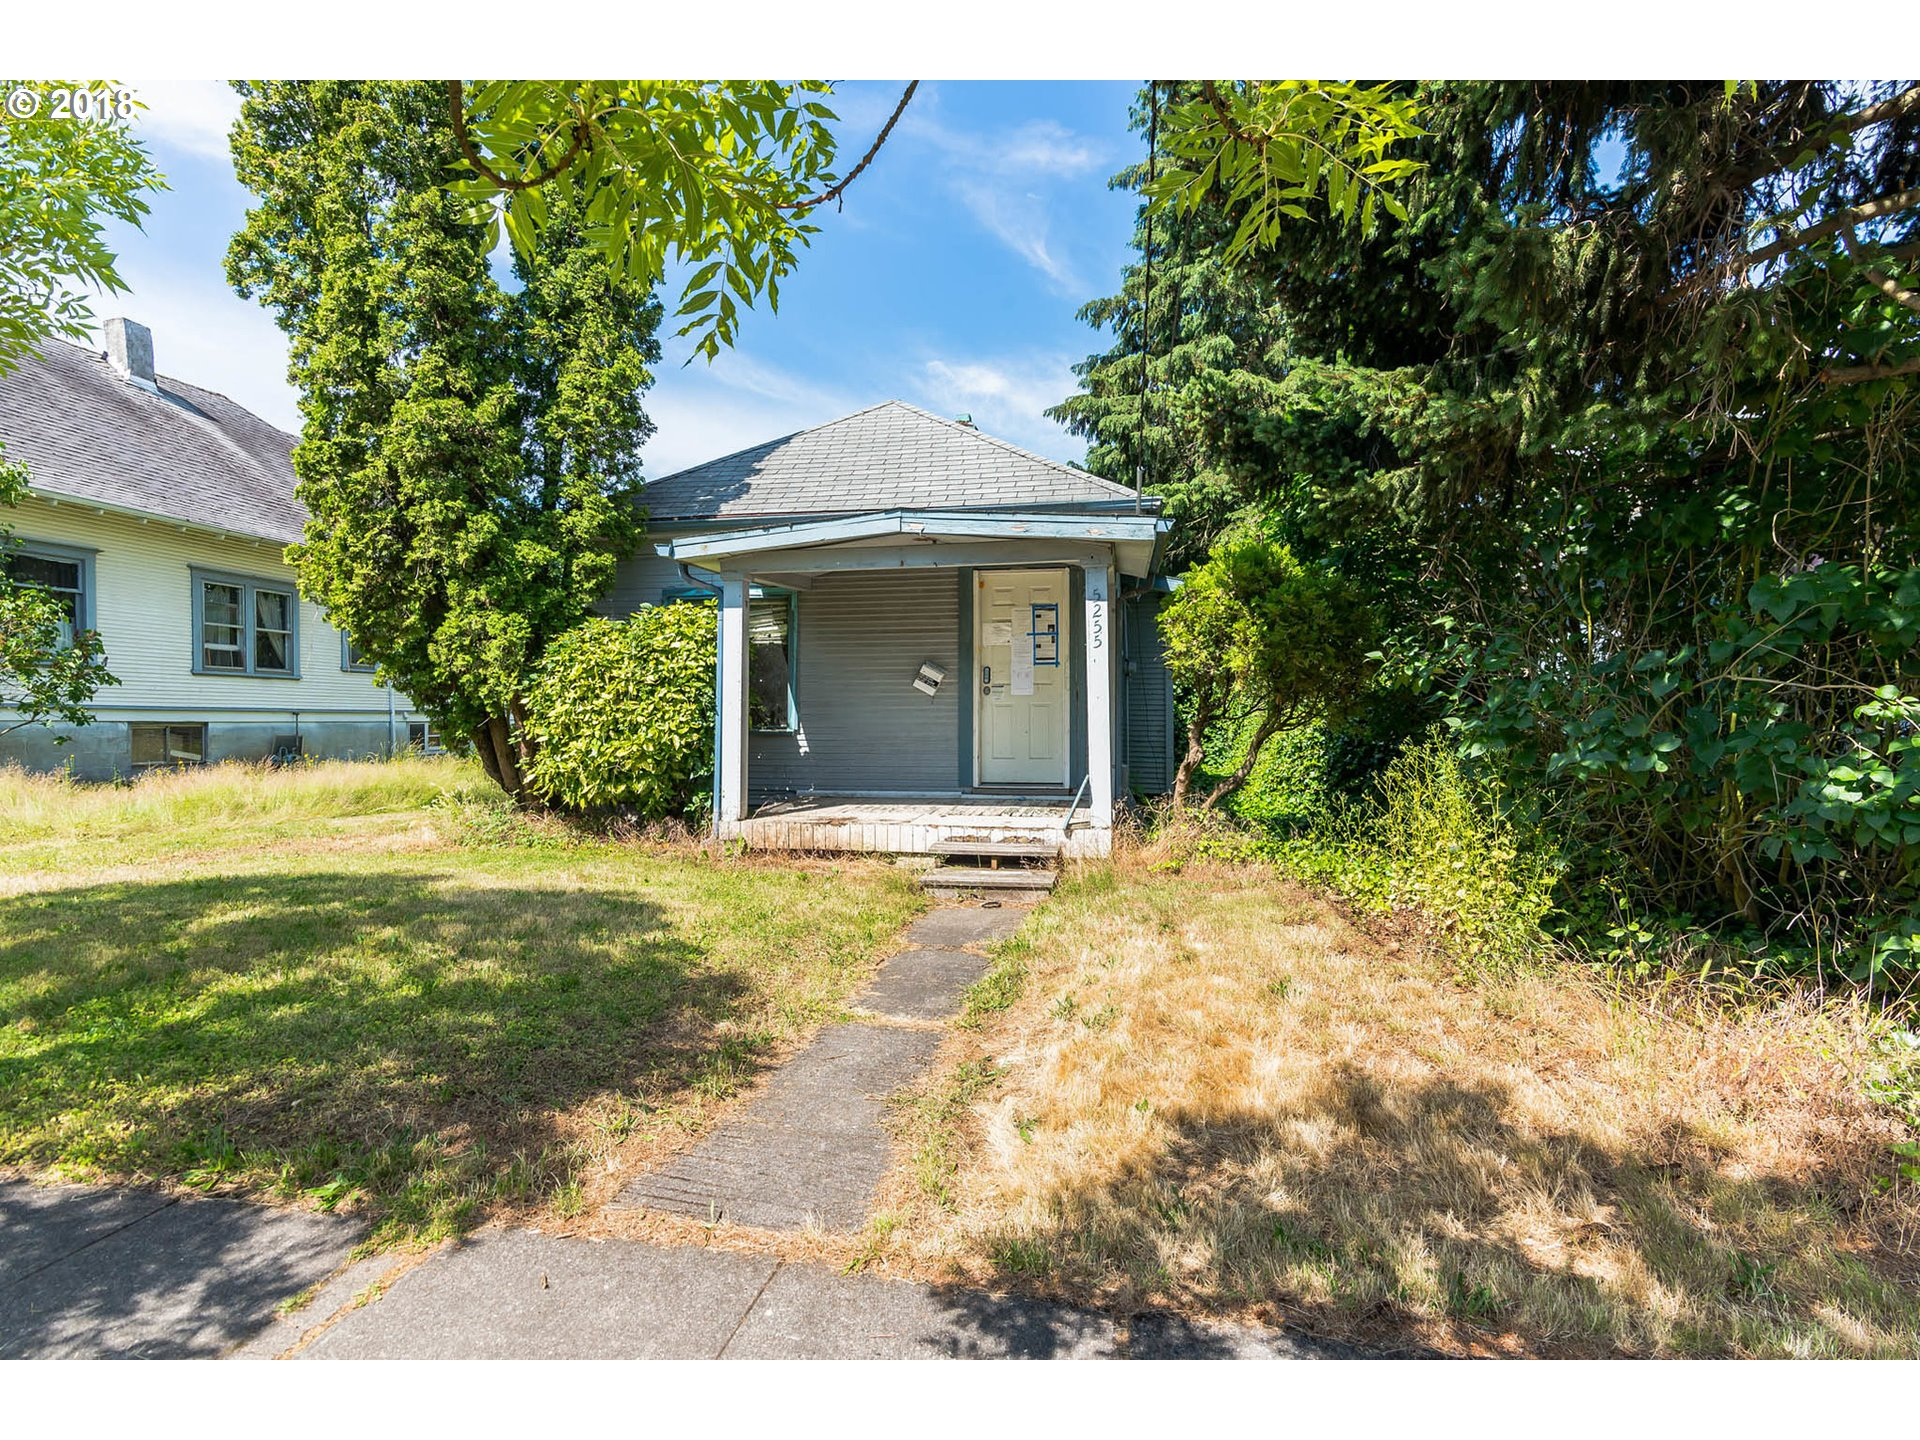 562 sq. ft 1 bedrooms 1 bathrooms  House ,Portland, OR